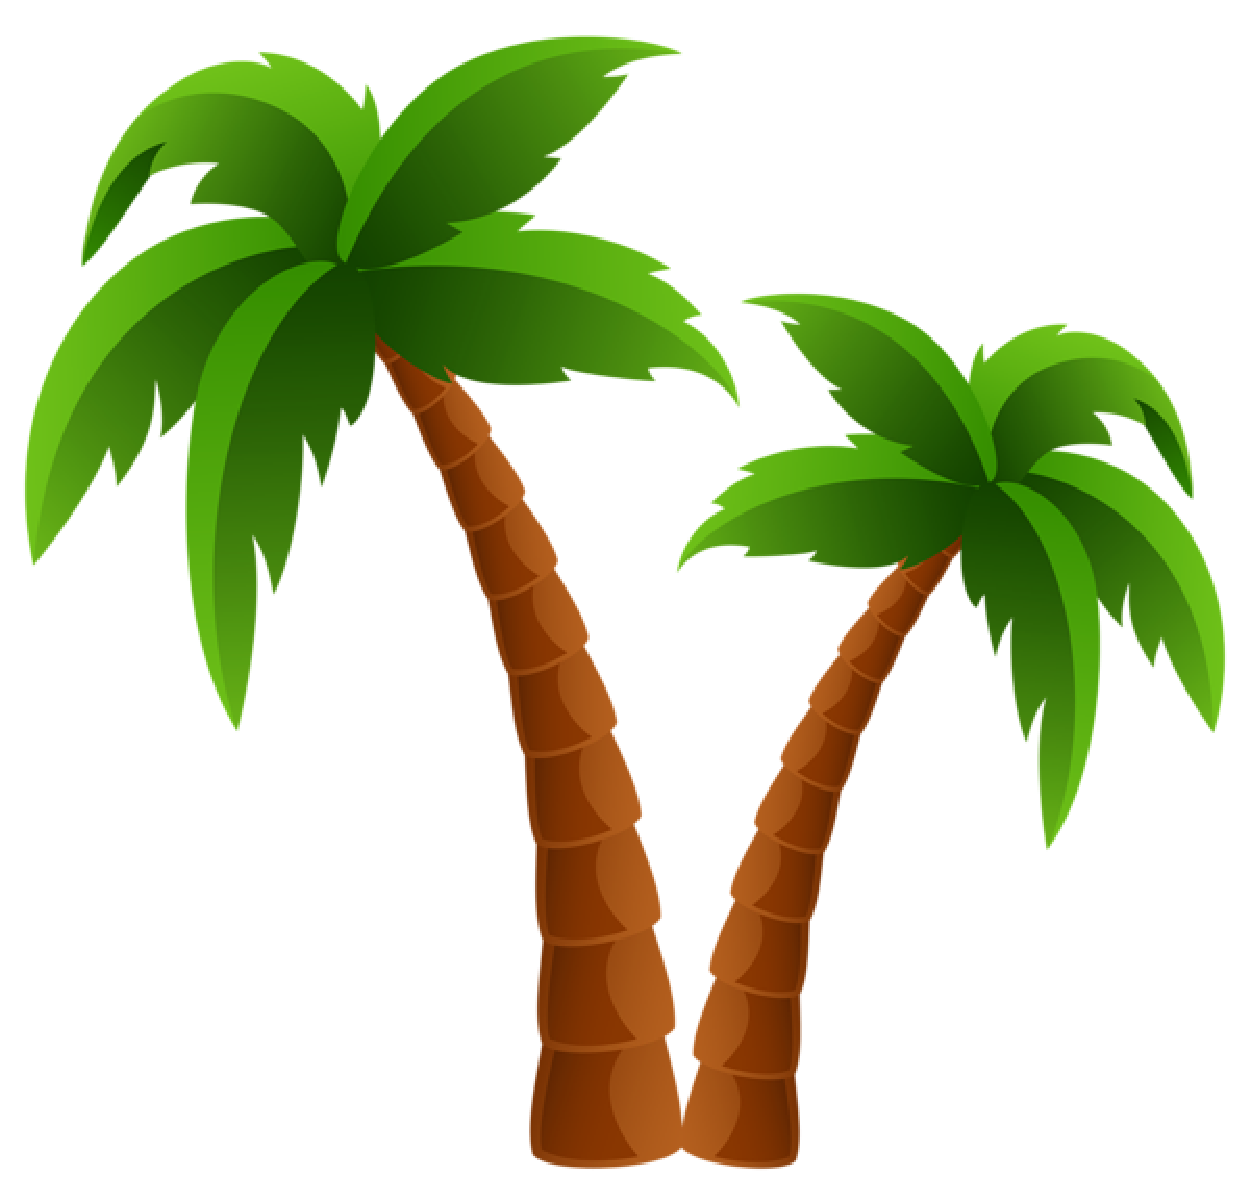 Clipart palm tree free jpg free download palm-tree-clipart (13) Vector EPS Free Download, Logo, Icons ... jpg free download